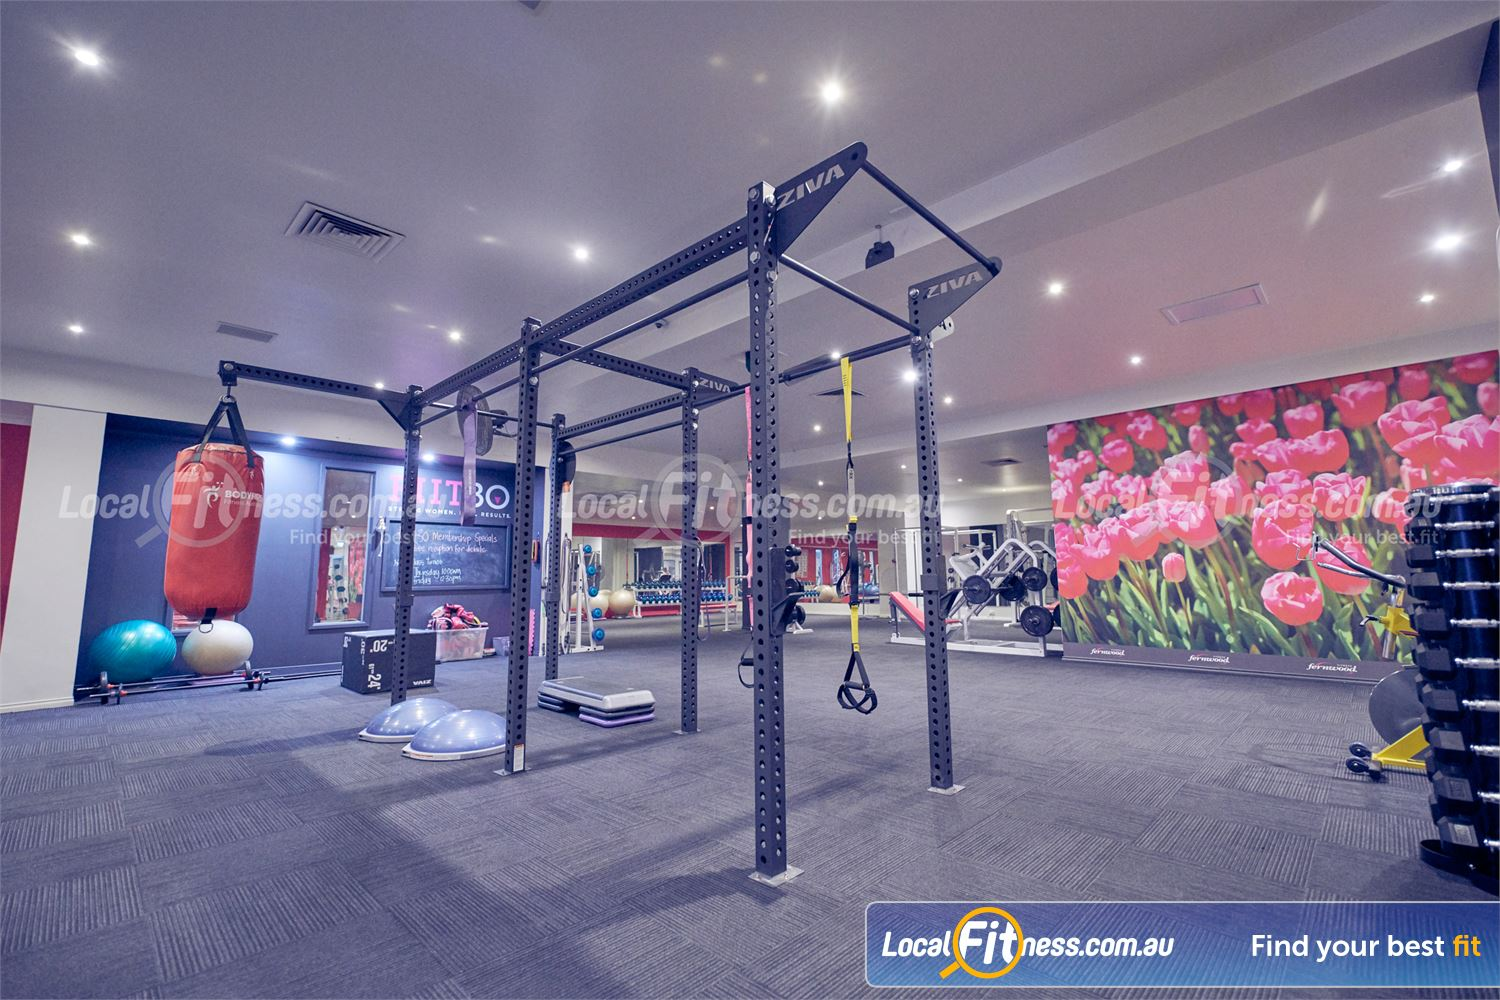 Fernwood Fitness Near Doncaster Train when it suits you with Bulleen 24 hour gym access.